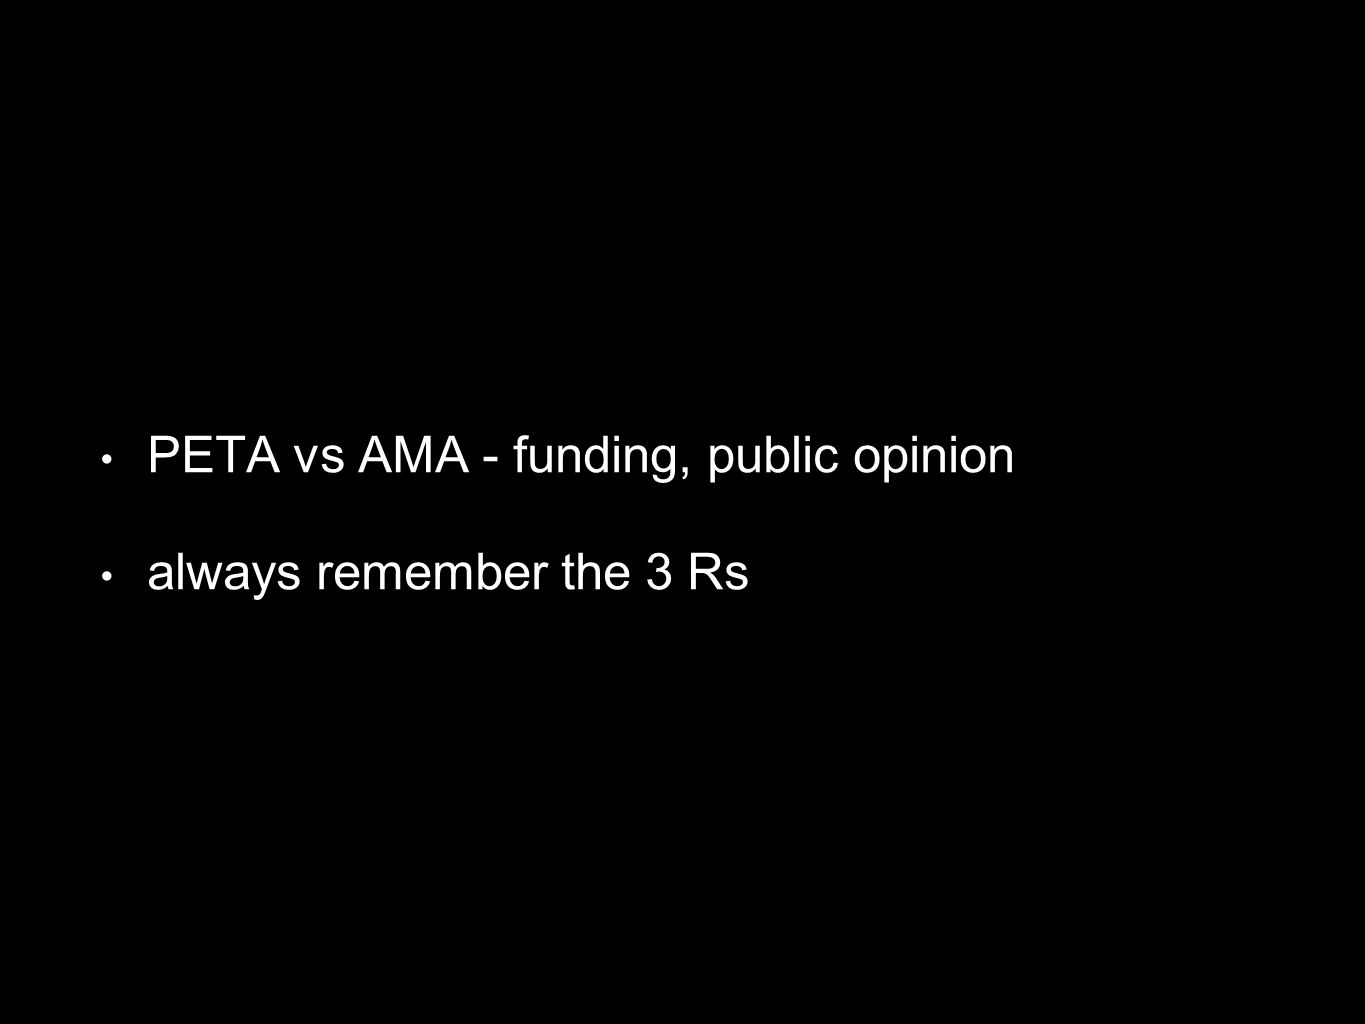 PETA vs AMA - funding, public opinion always remember the 3 Rs